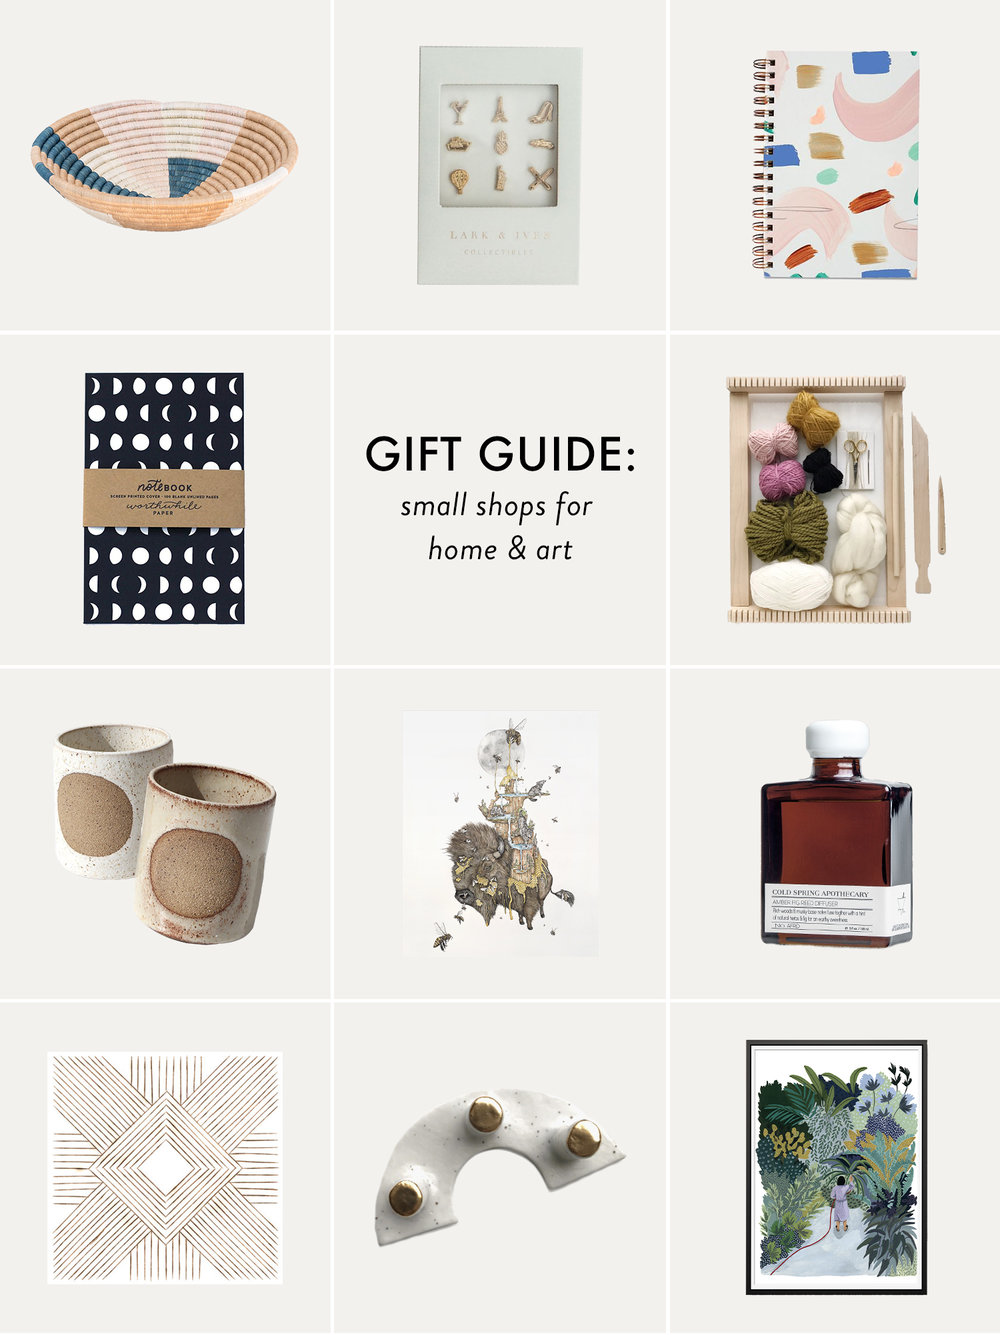 Small Business Saturday Gift Guide | Little Shops for Home Decor, Art and Creativity | Reux Design Co.